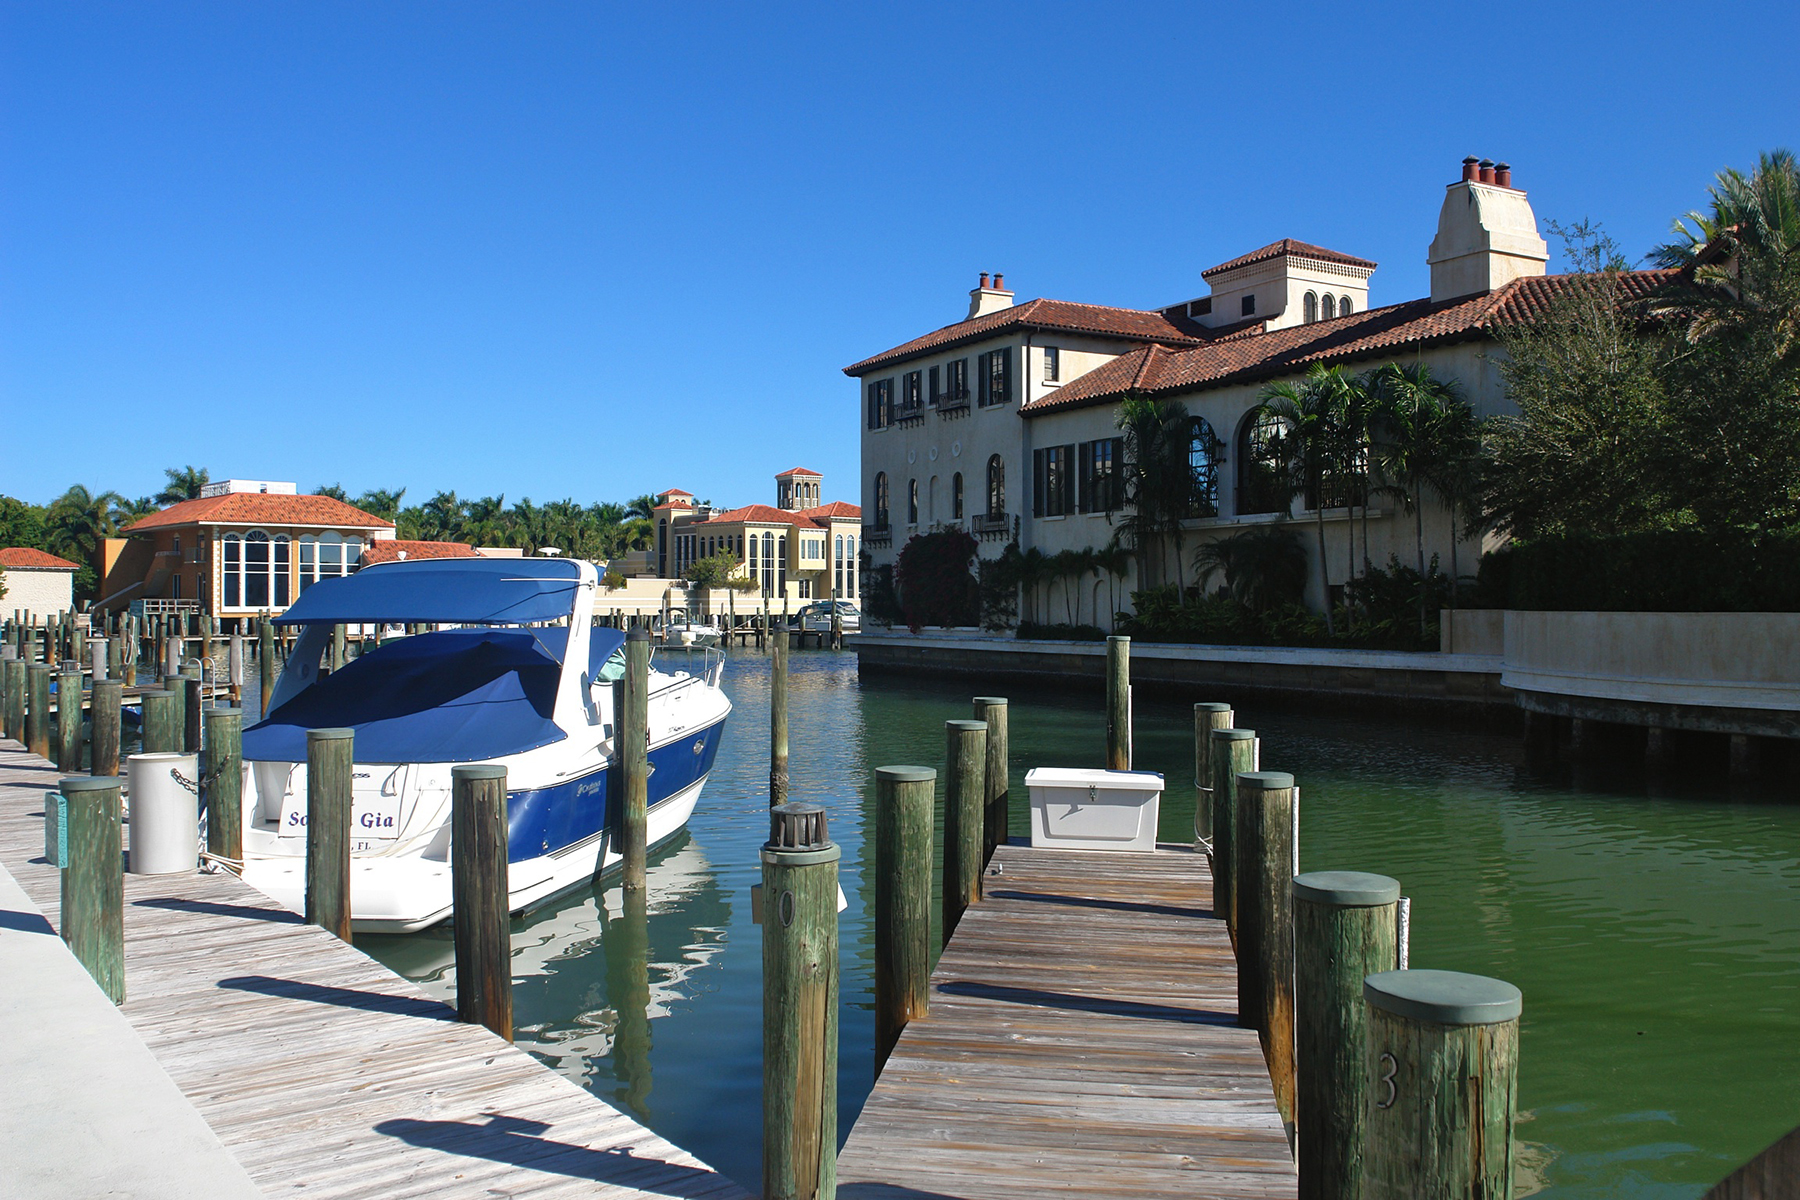 Property For Sale at PARK SHORE - VENETIAN BAY YACHT CLUB